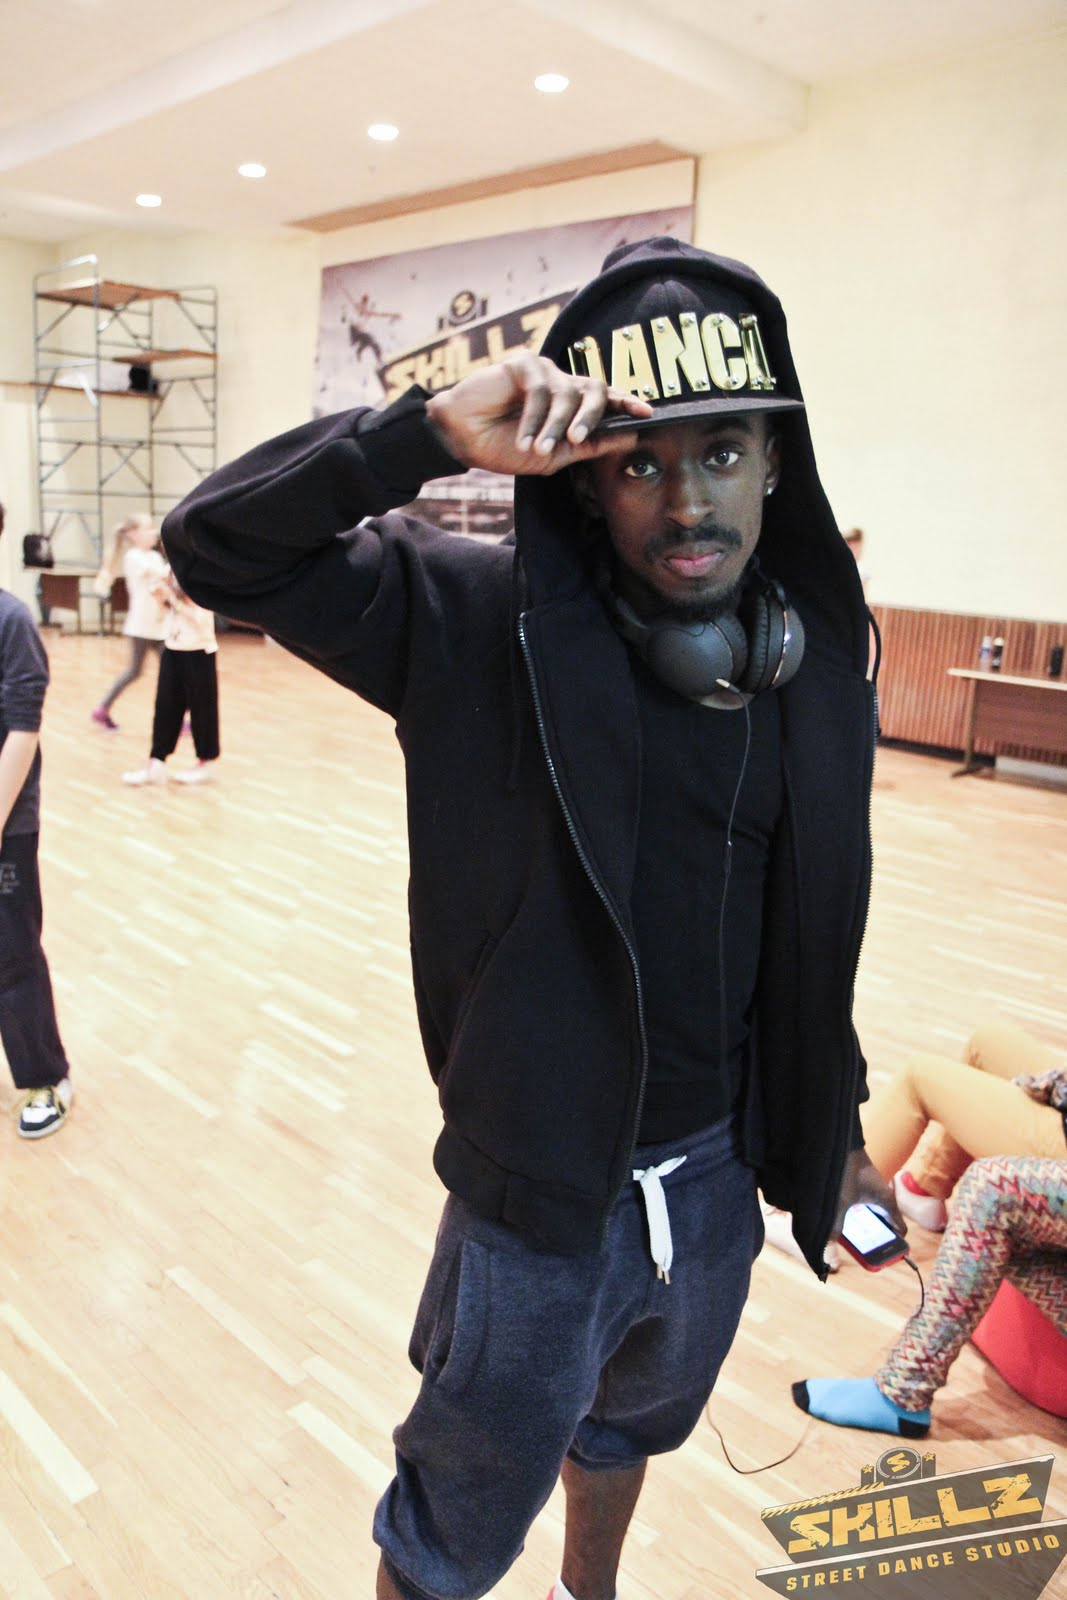 Dancehall workshop with Black Di Danca (USA, New Y - IMG_6786.jpg